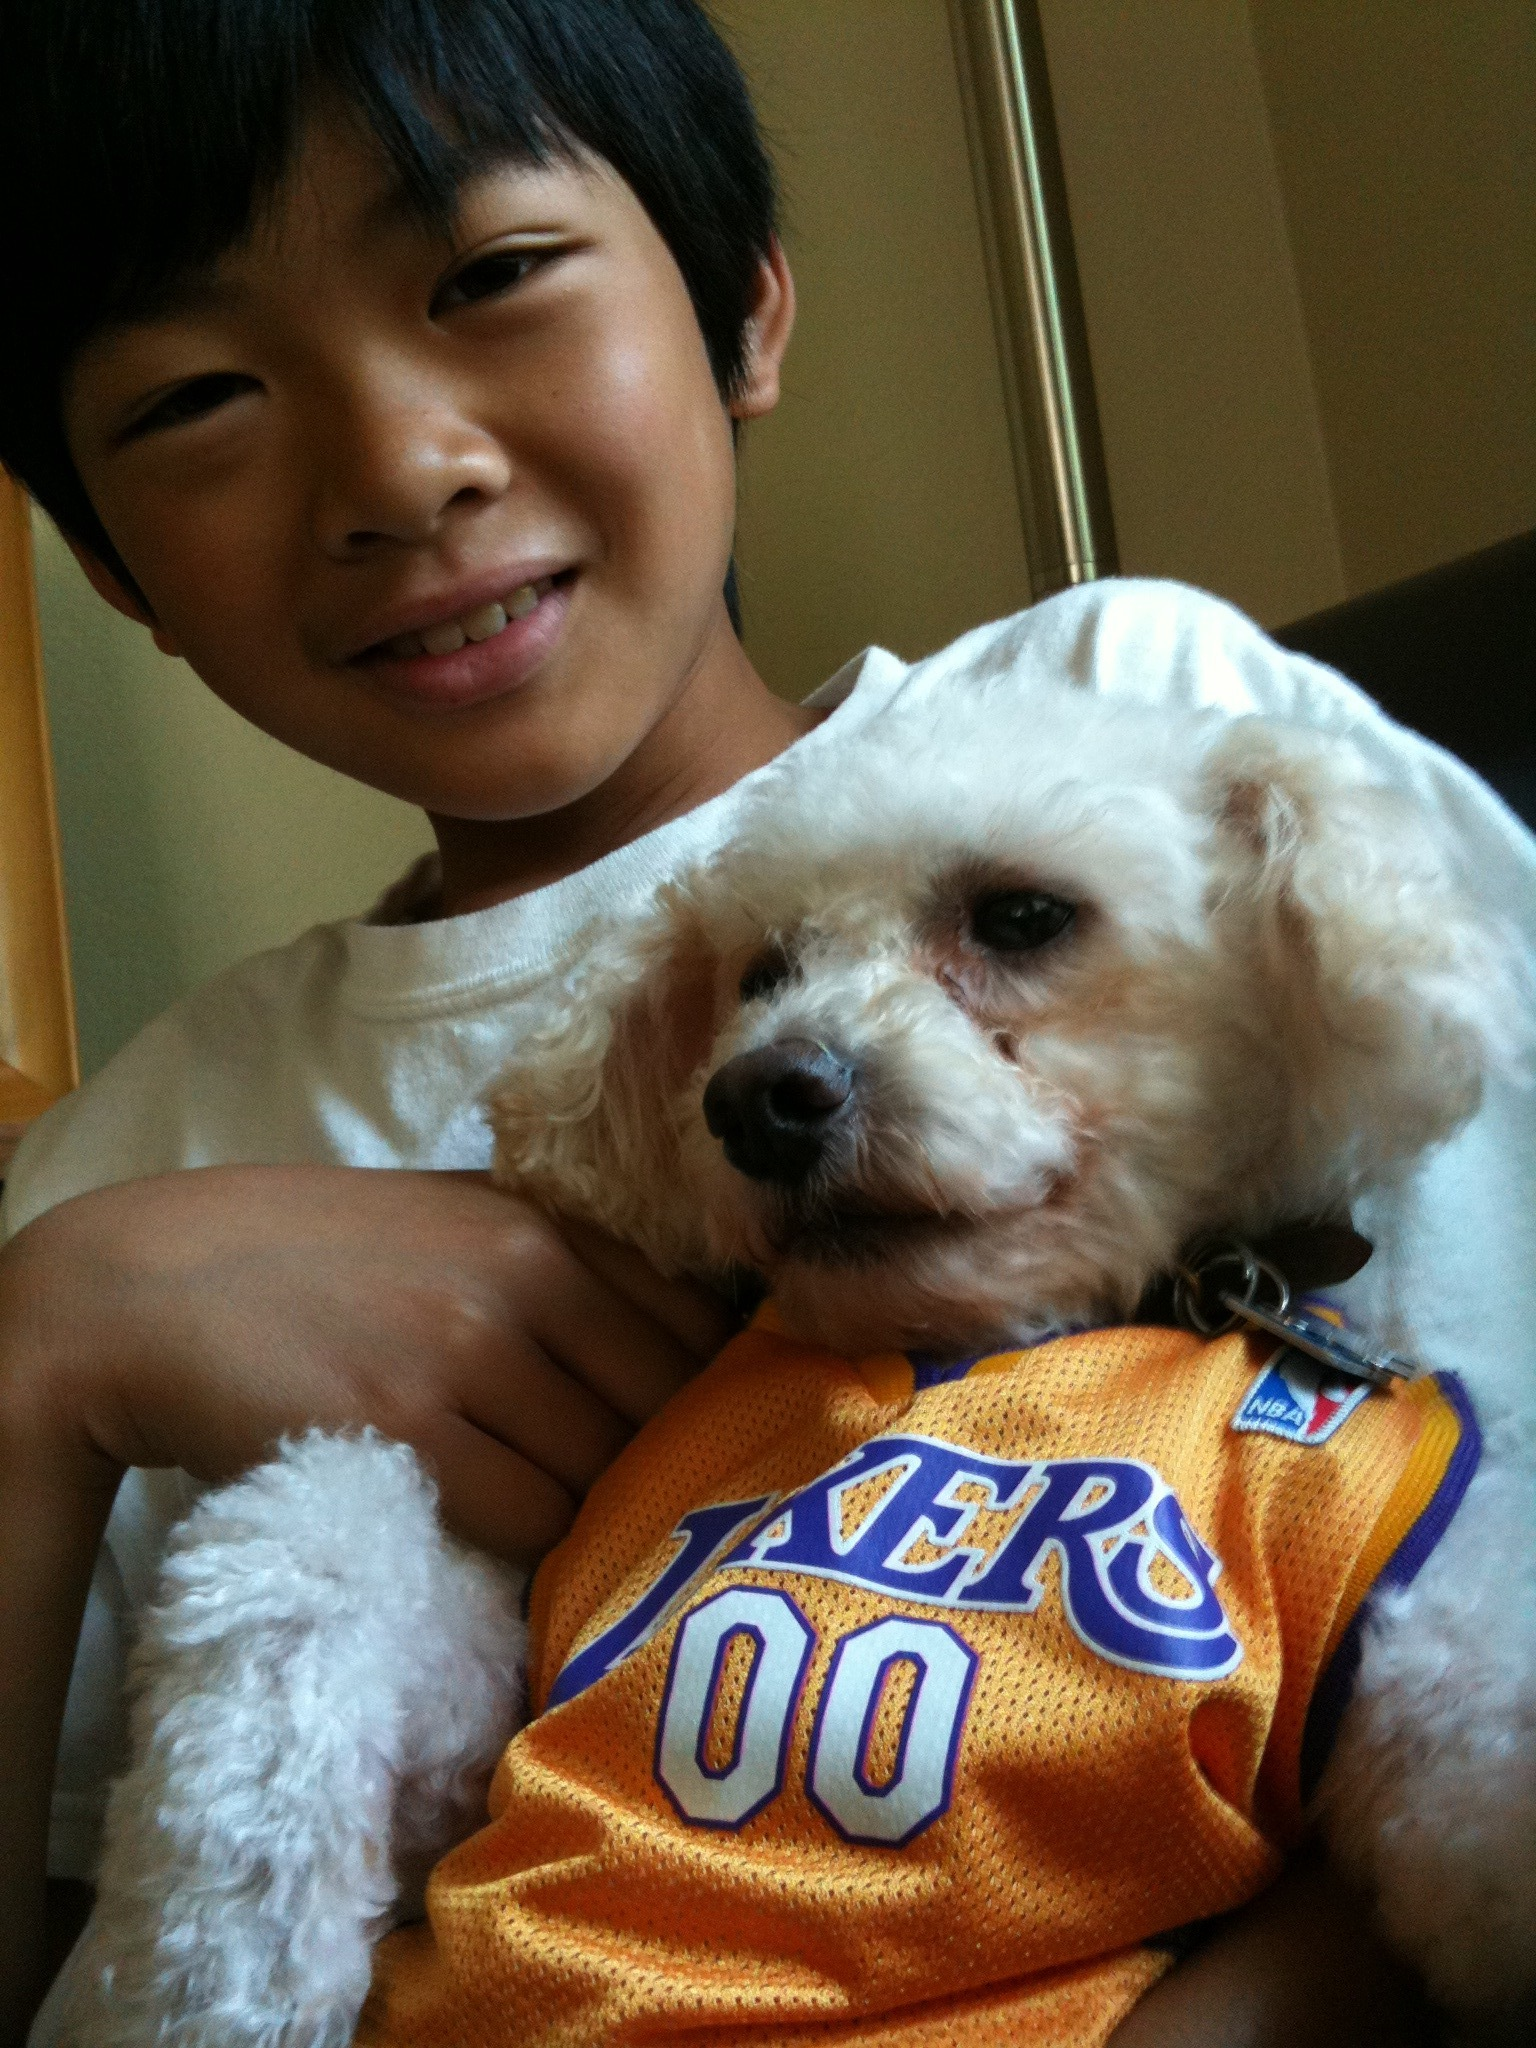 The boy and the dog are ready for the NBA Finals.